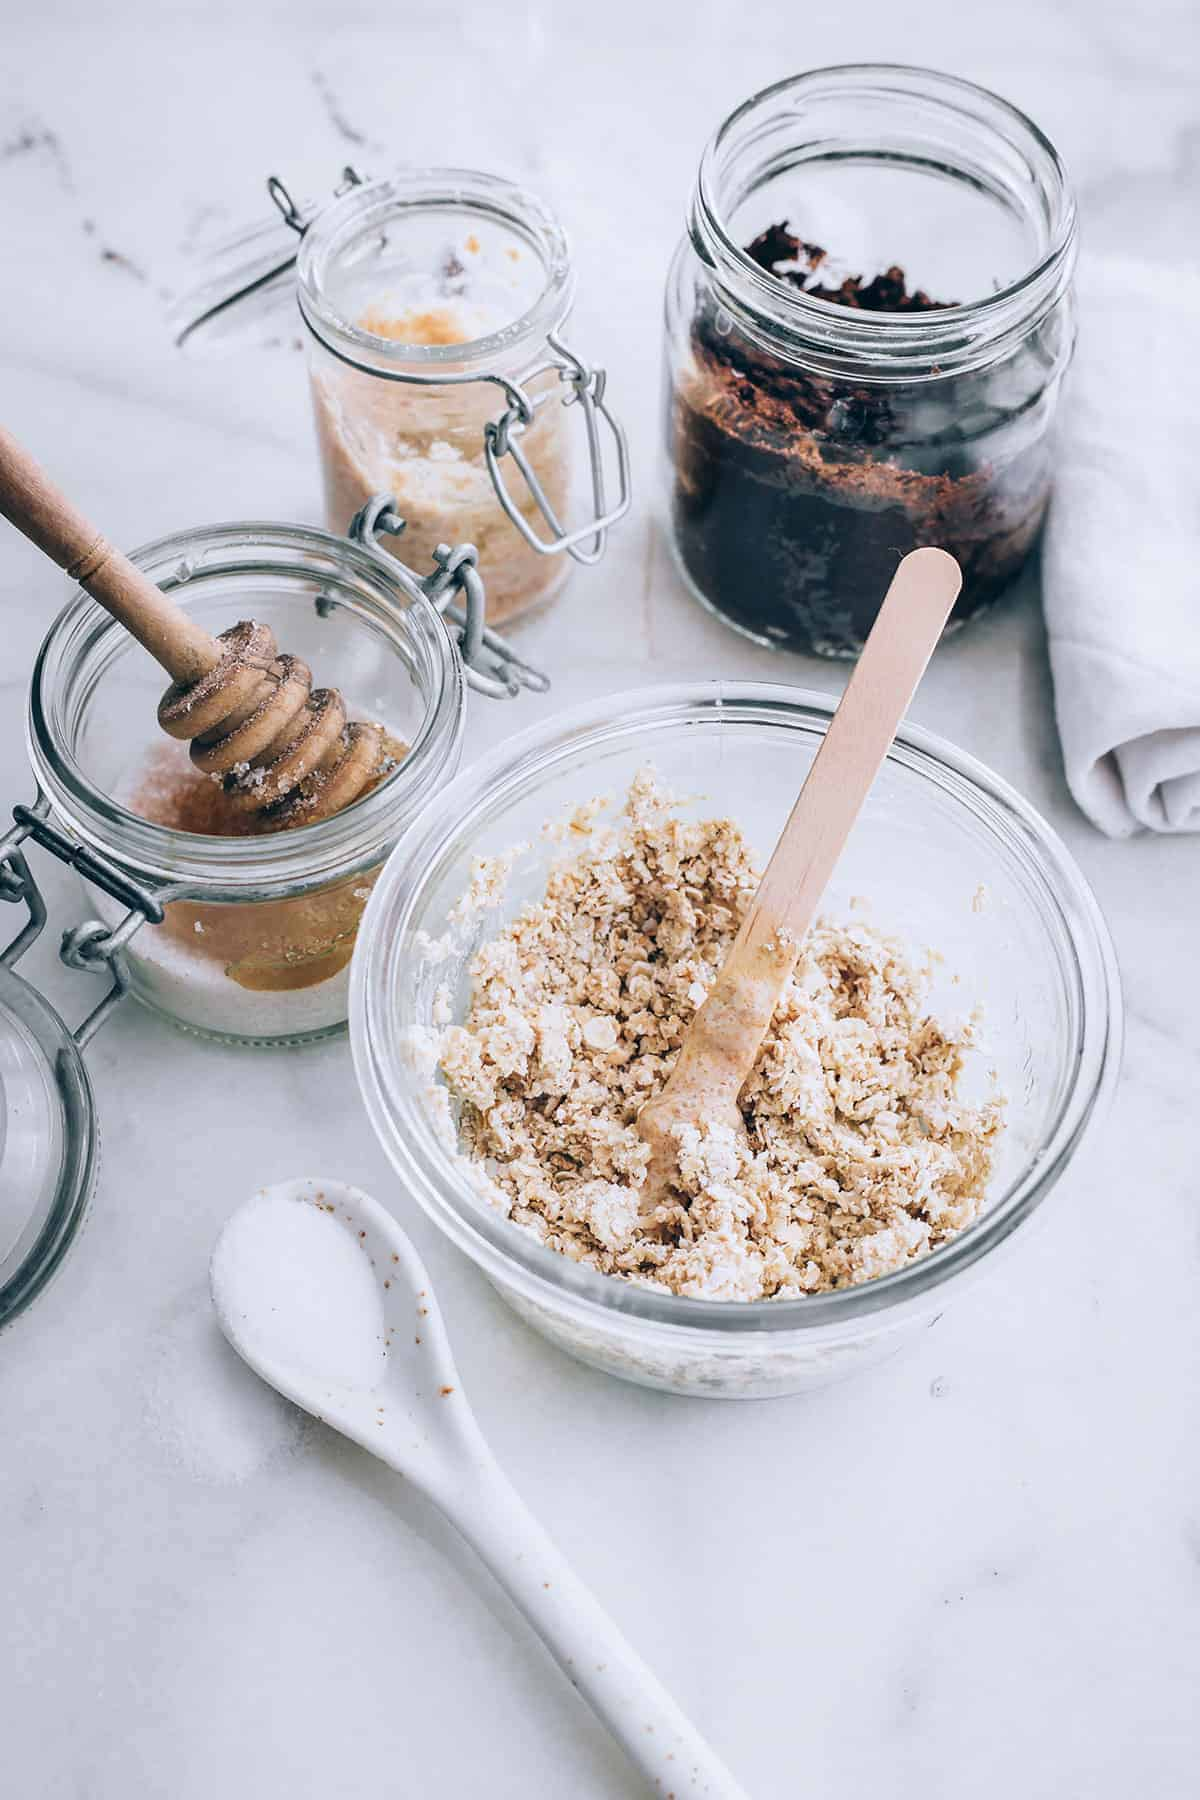 Make Homemade Scrubs With Sugar For Ultimate Skin Exfoliation